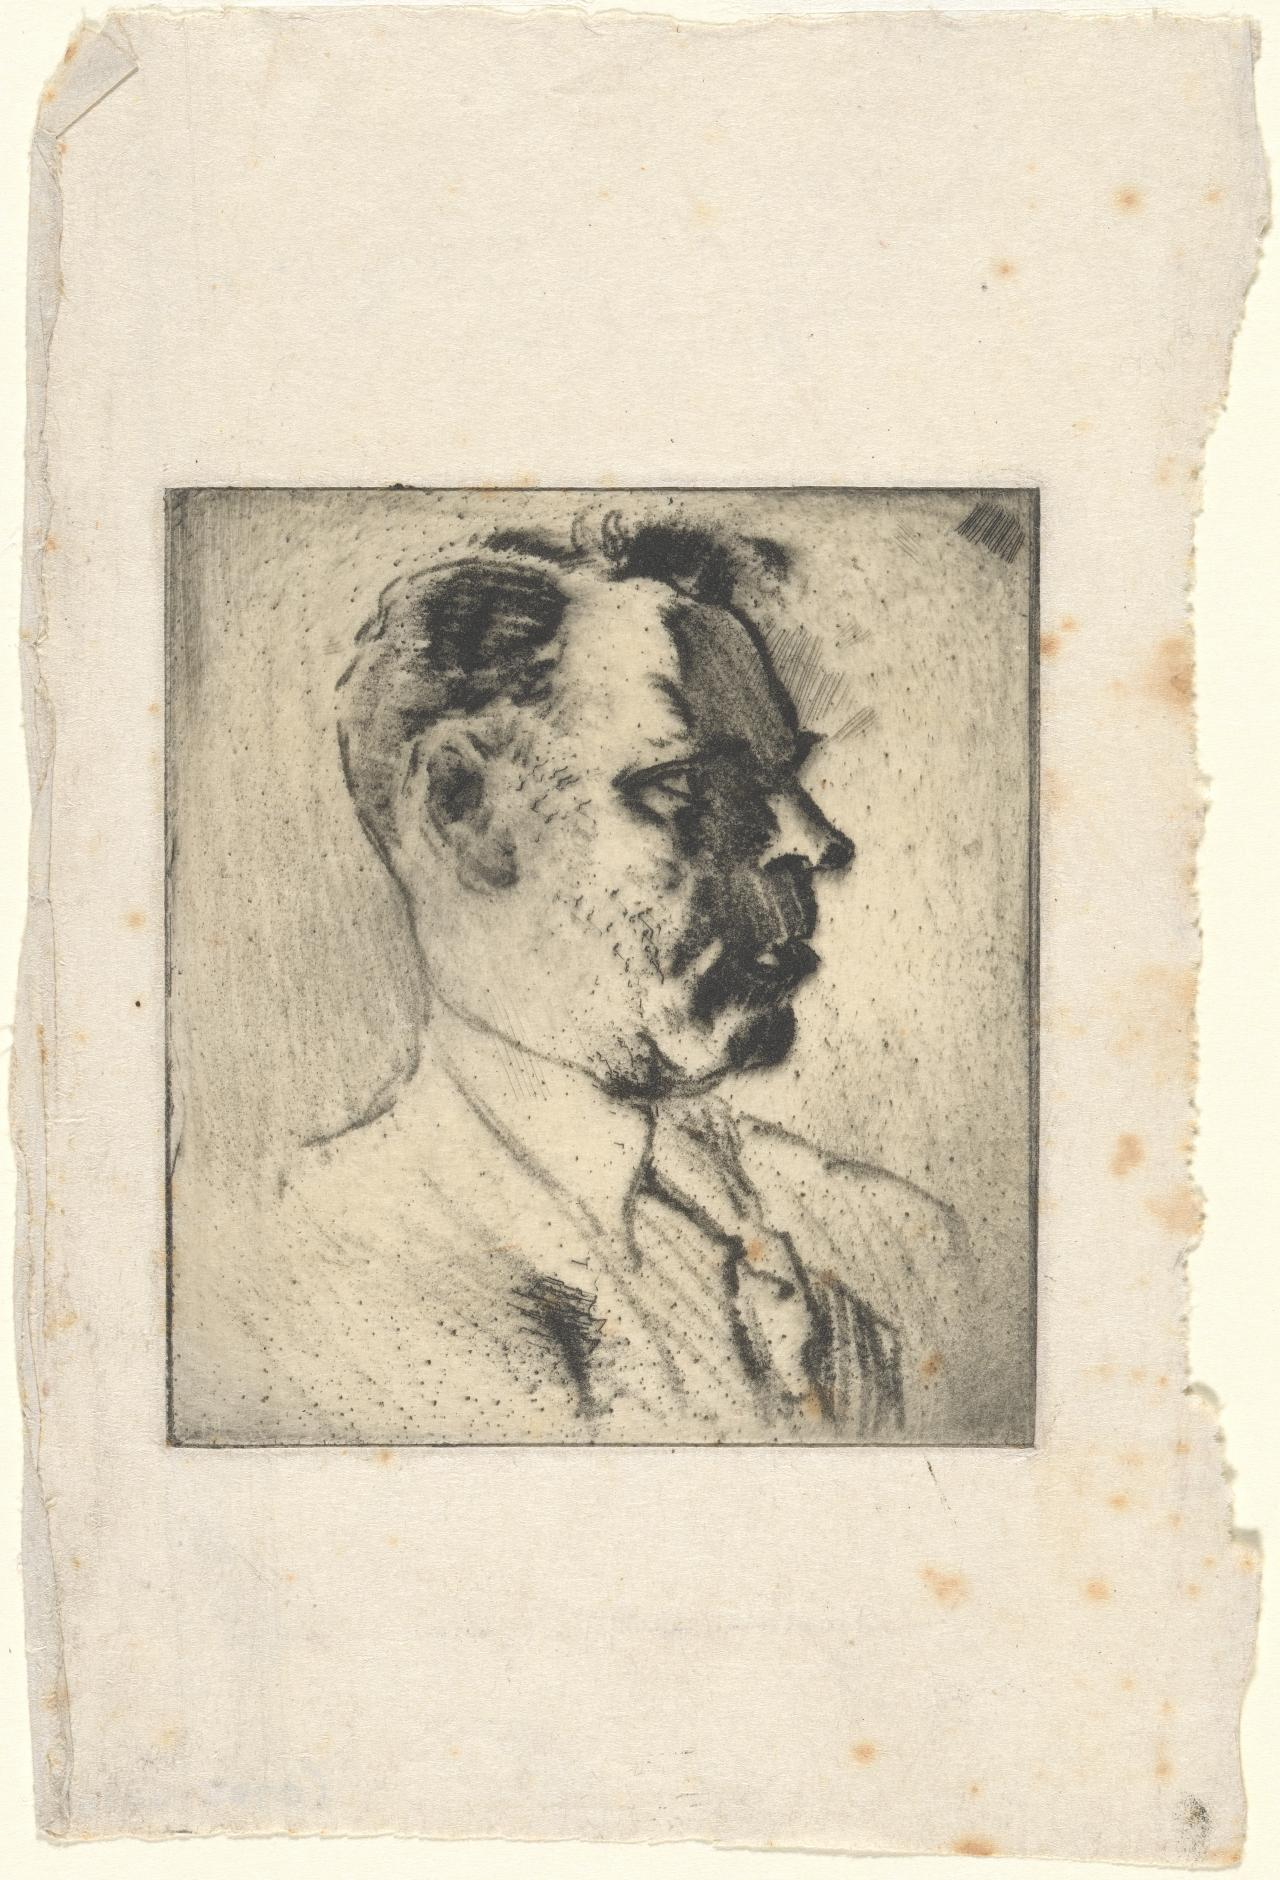 (Untitled) (Profile of a man's head)